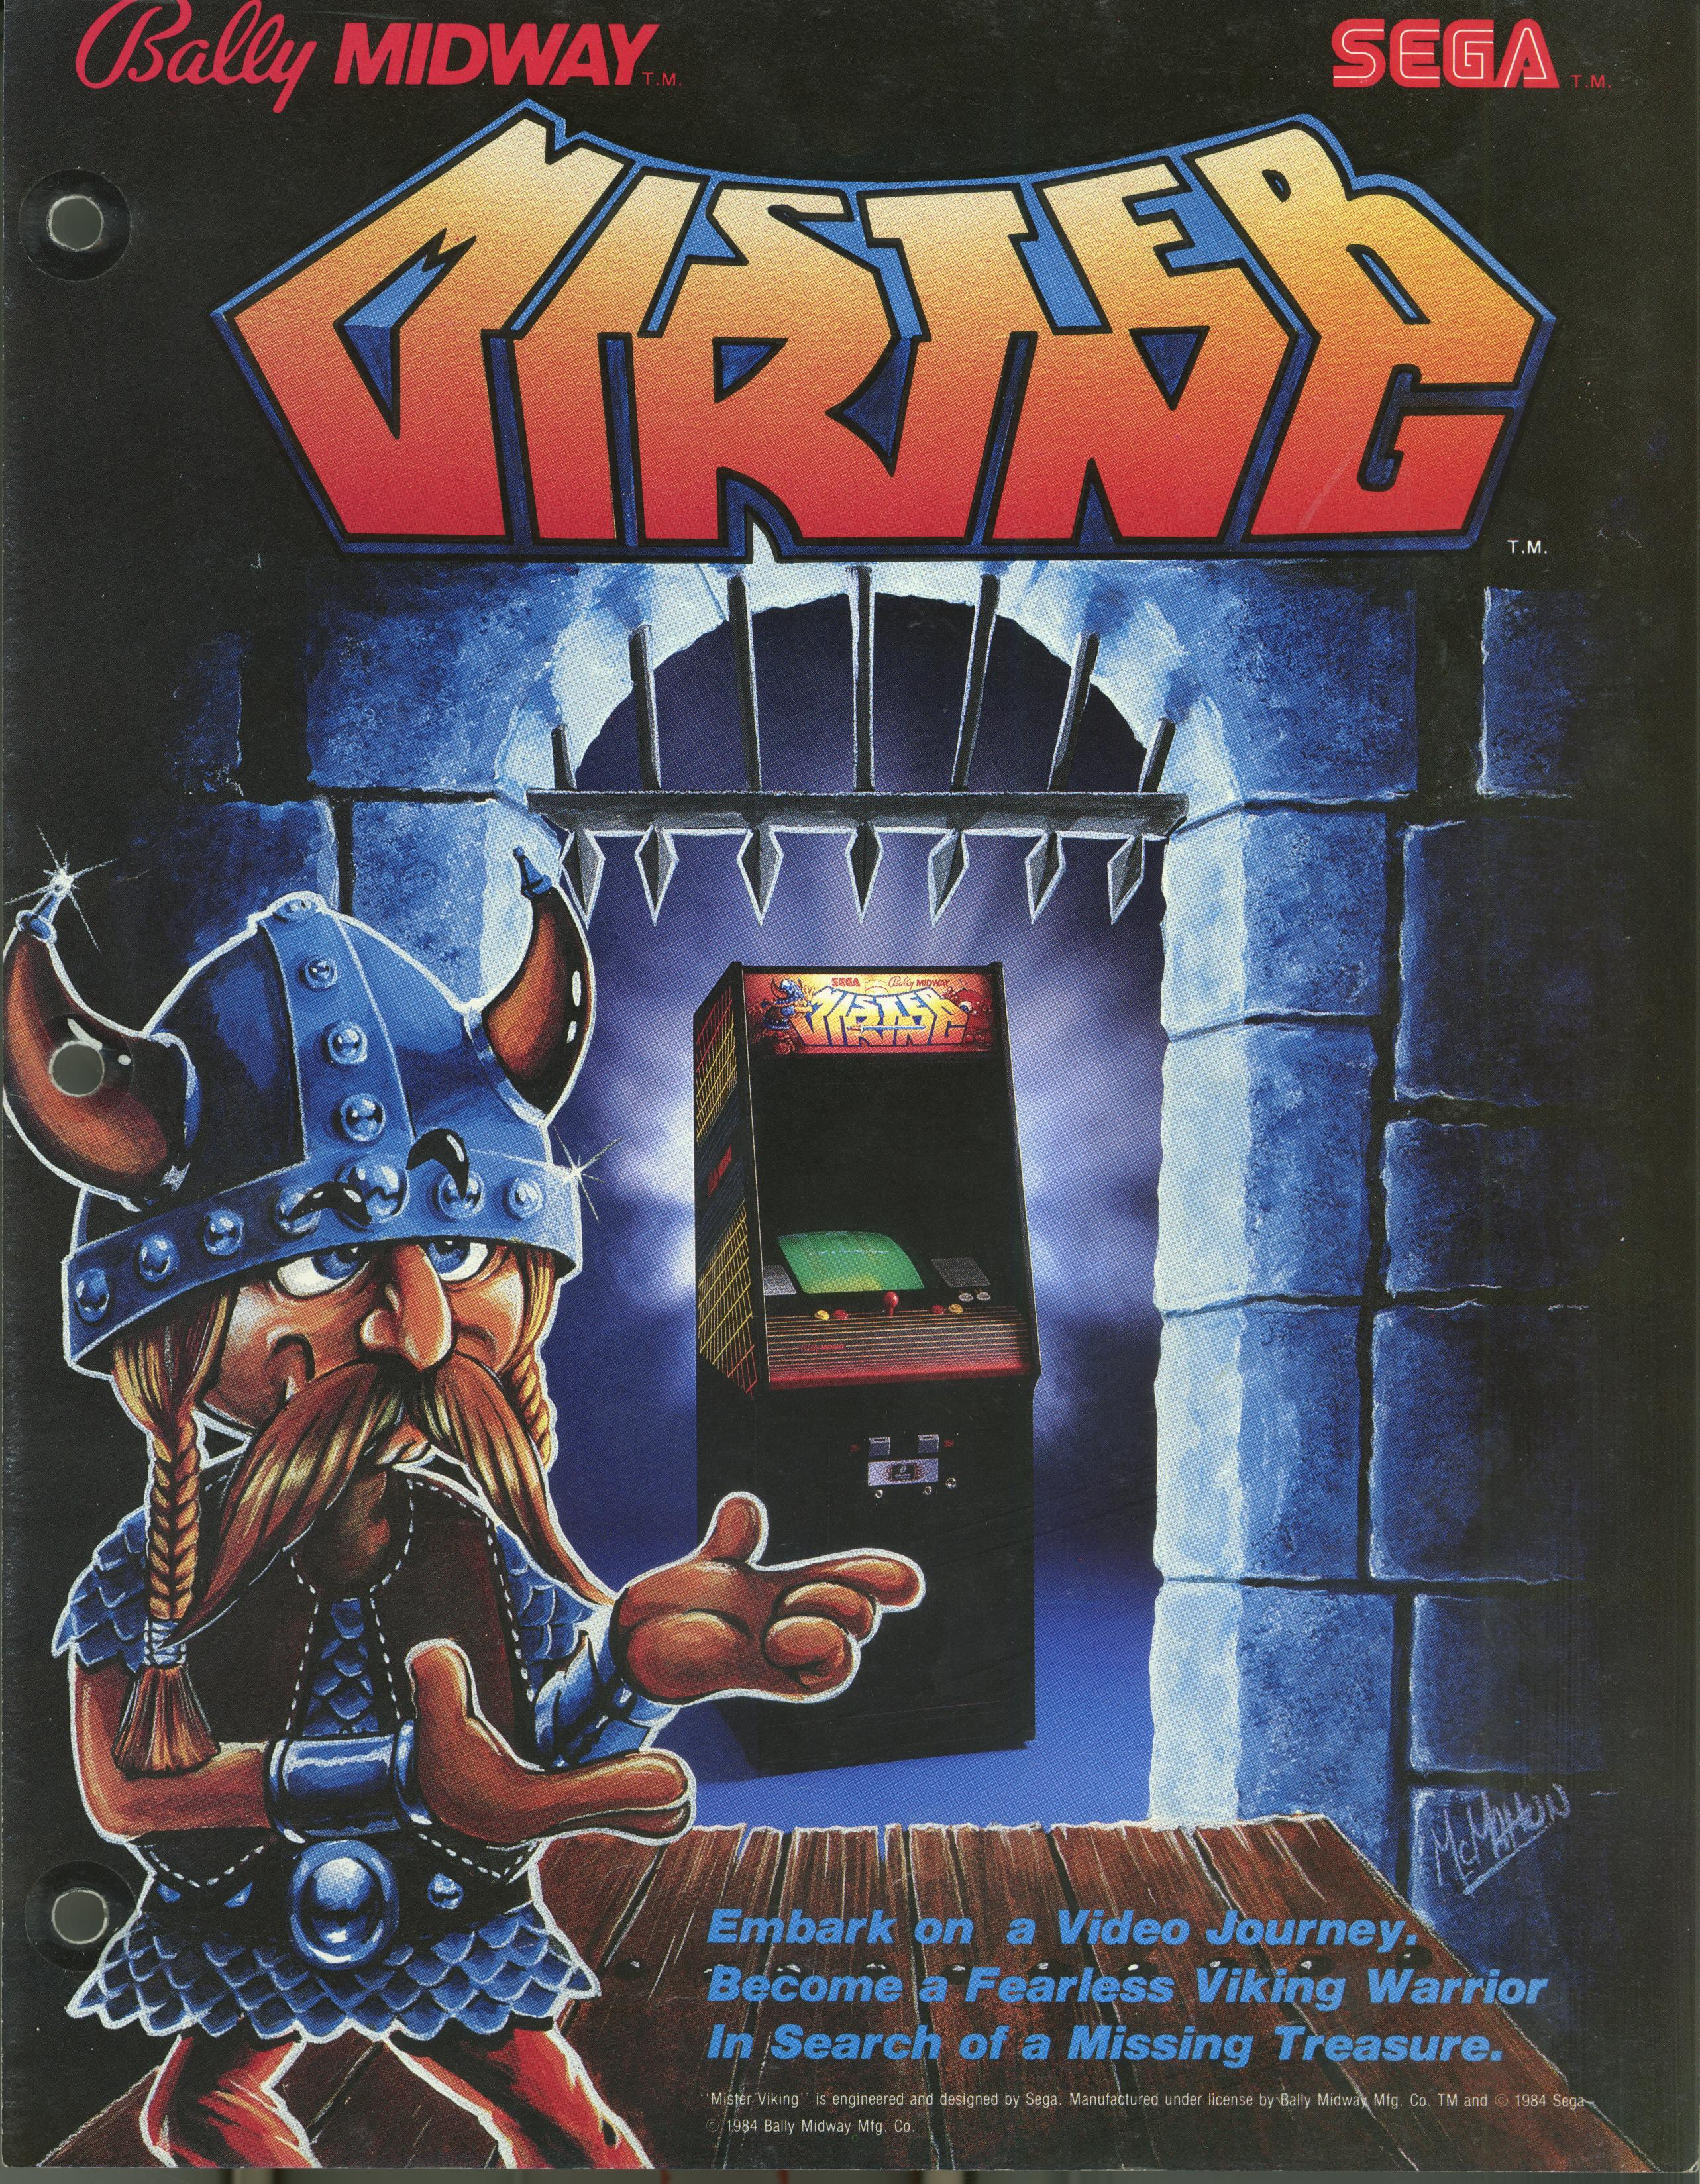 Index of /Arcade by Title/Mister Viking